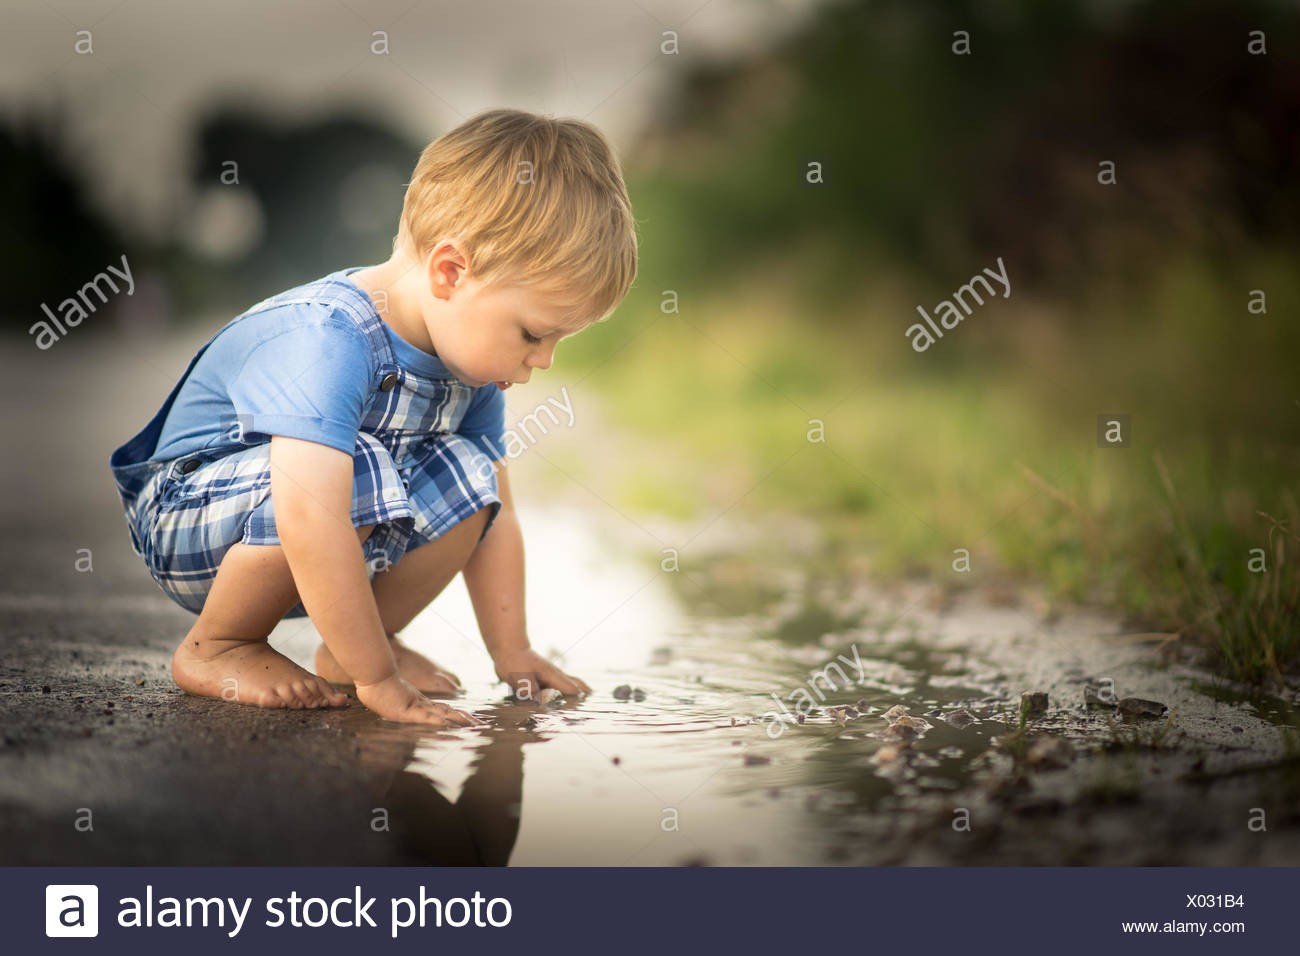 Boy playing in a puddle of water - Stock Image